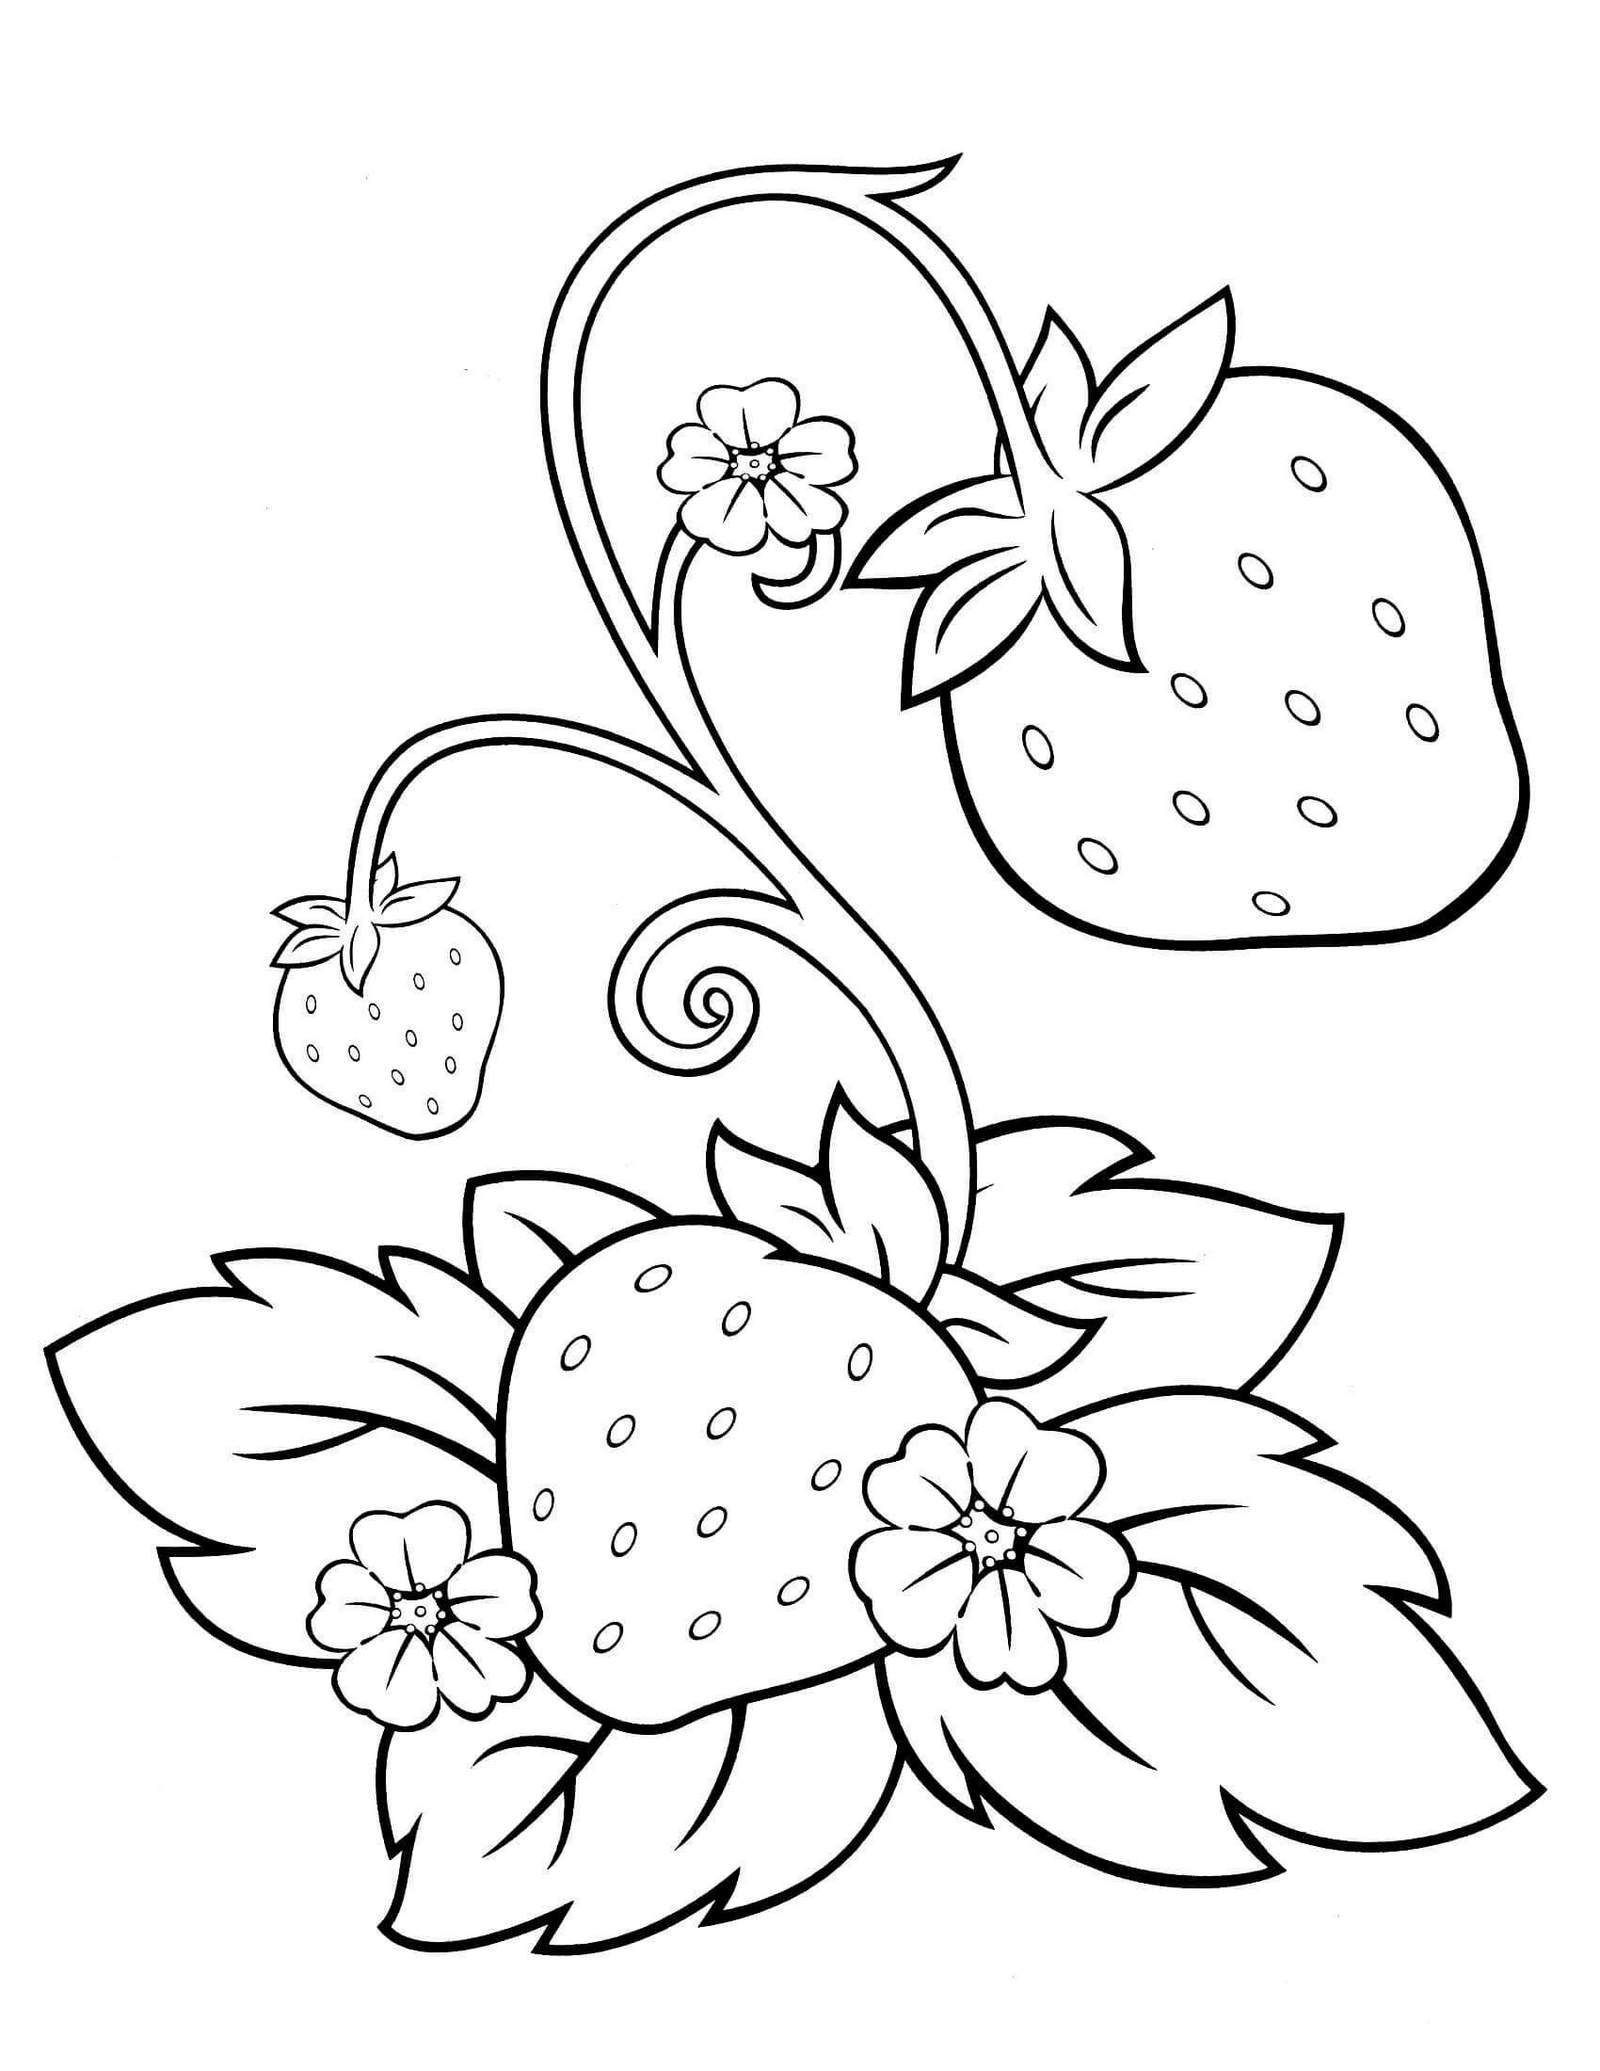 strawberry coloring and activity